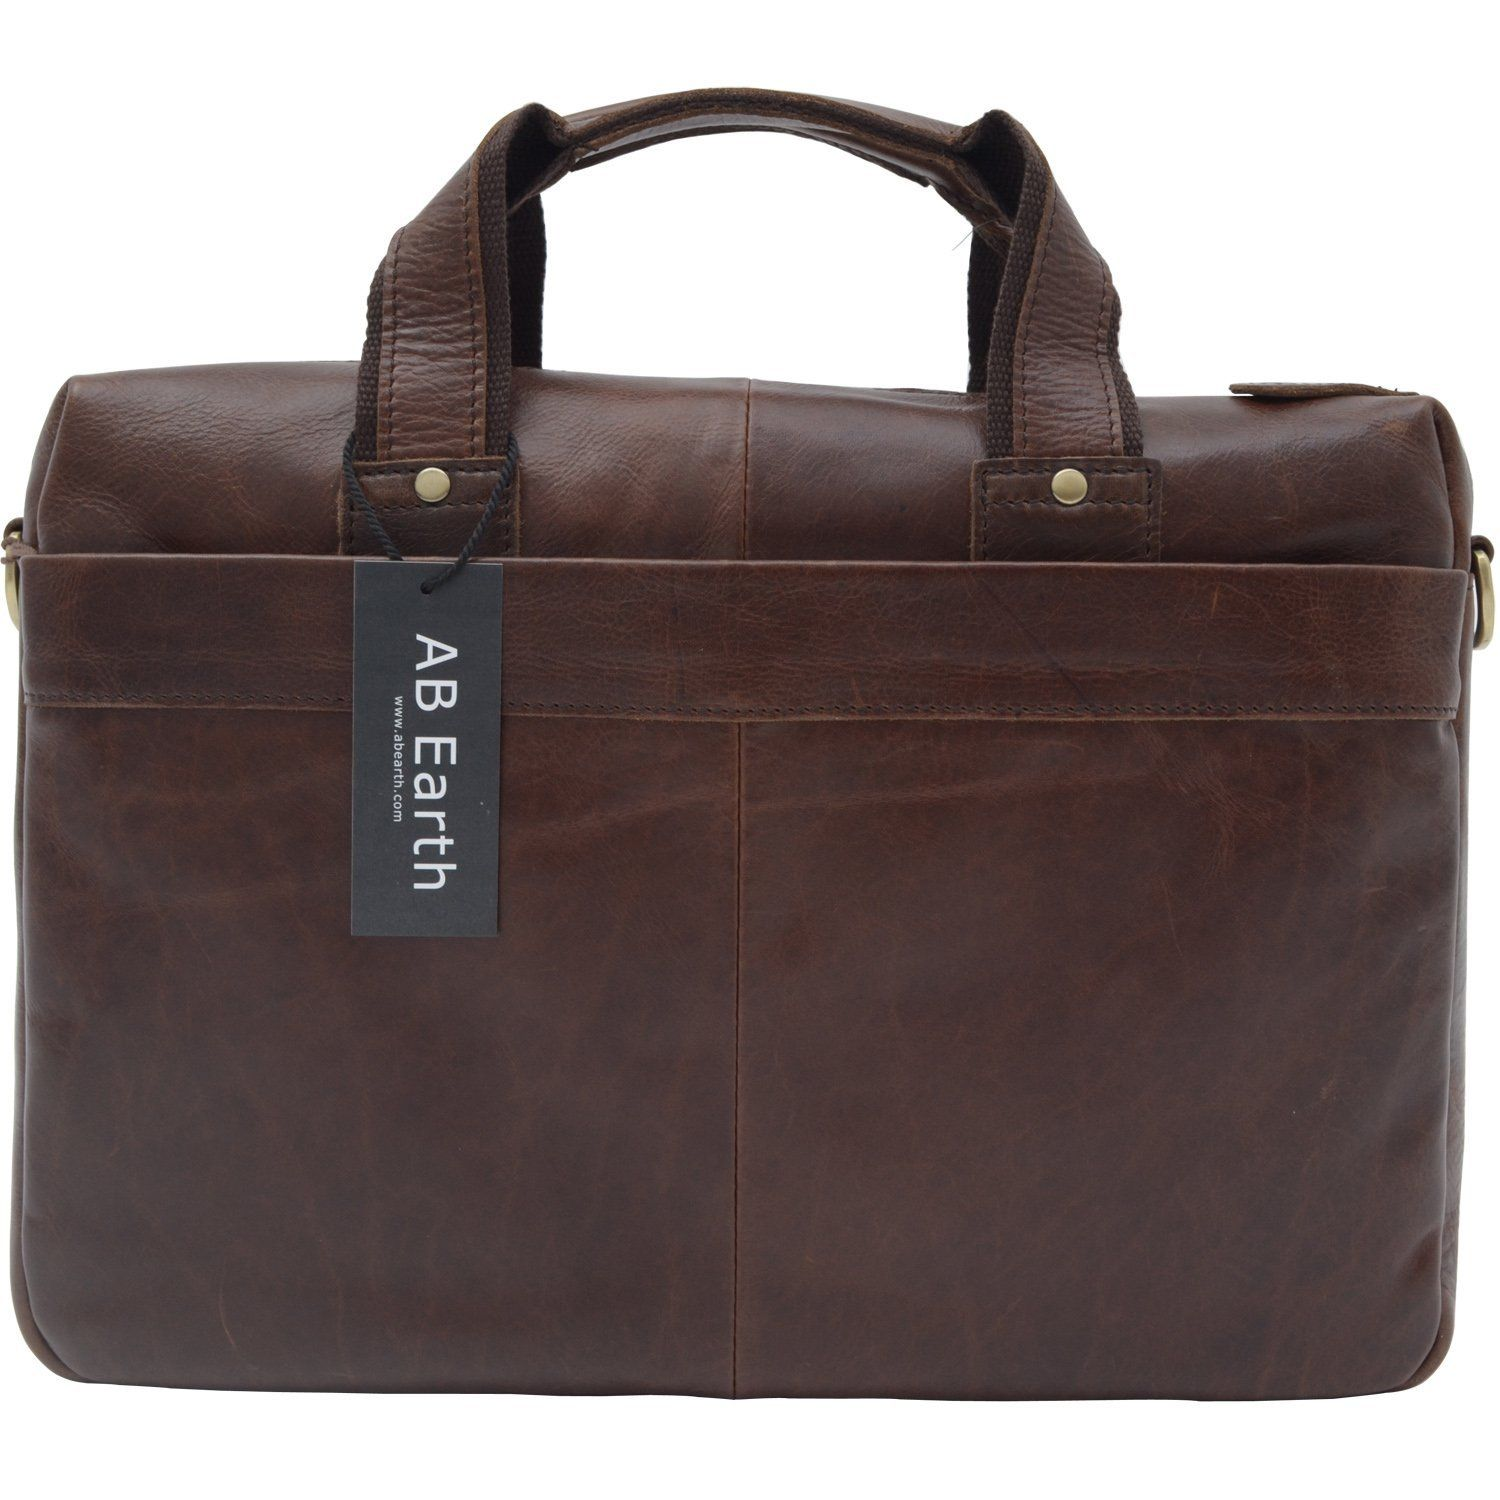 AB Earth New Vintage Leather Men's Briefcase Messenger Bag | The ...